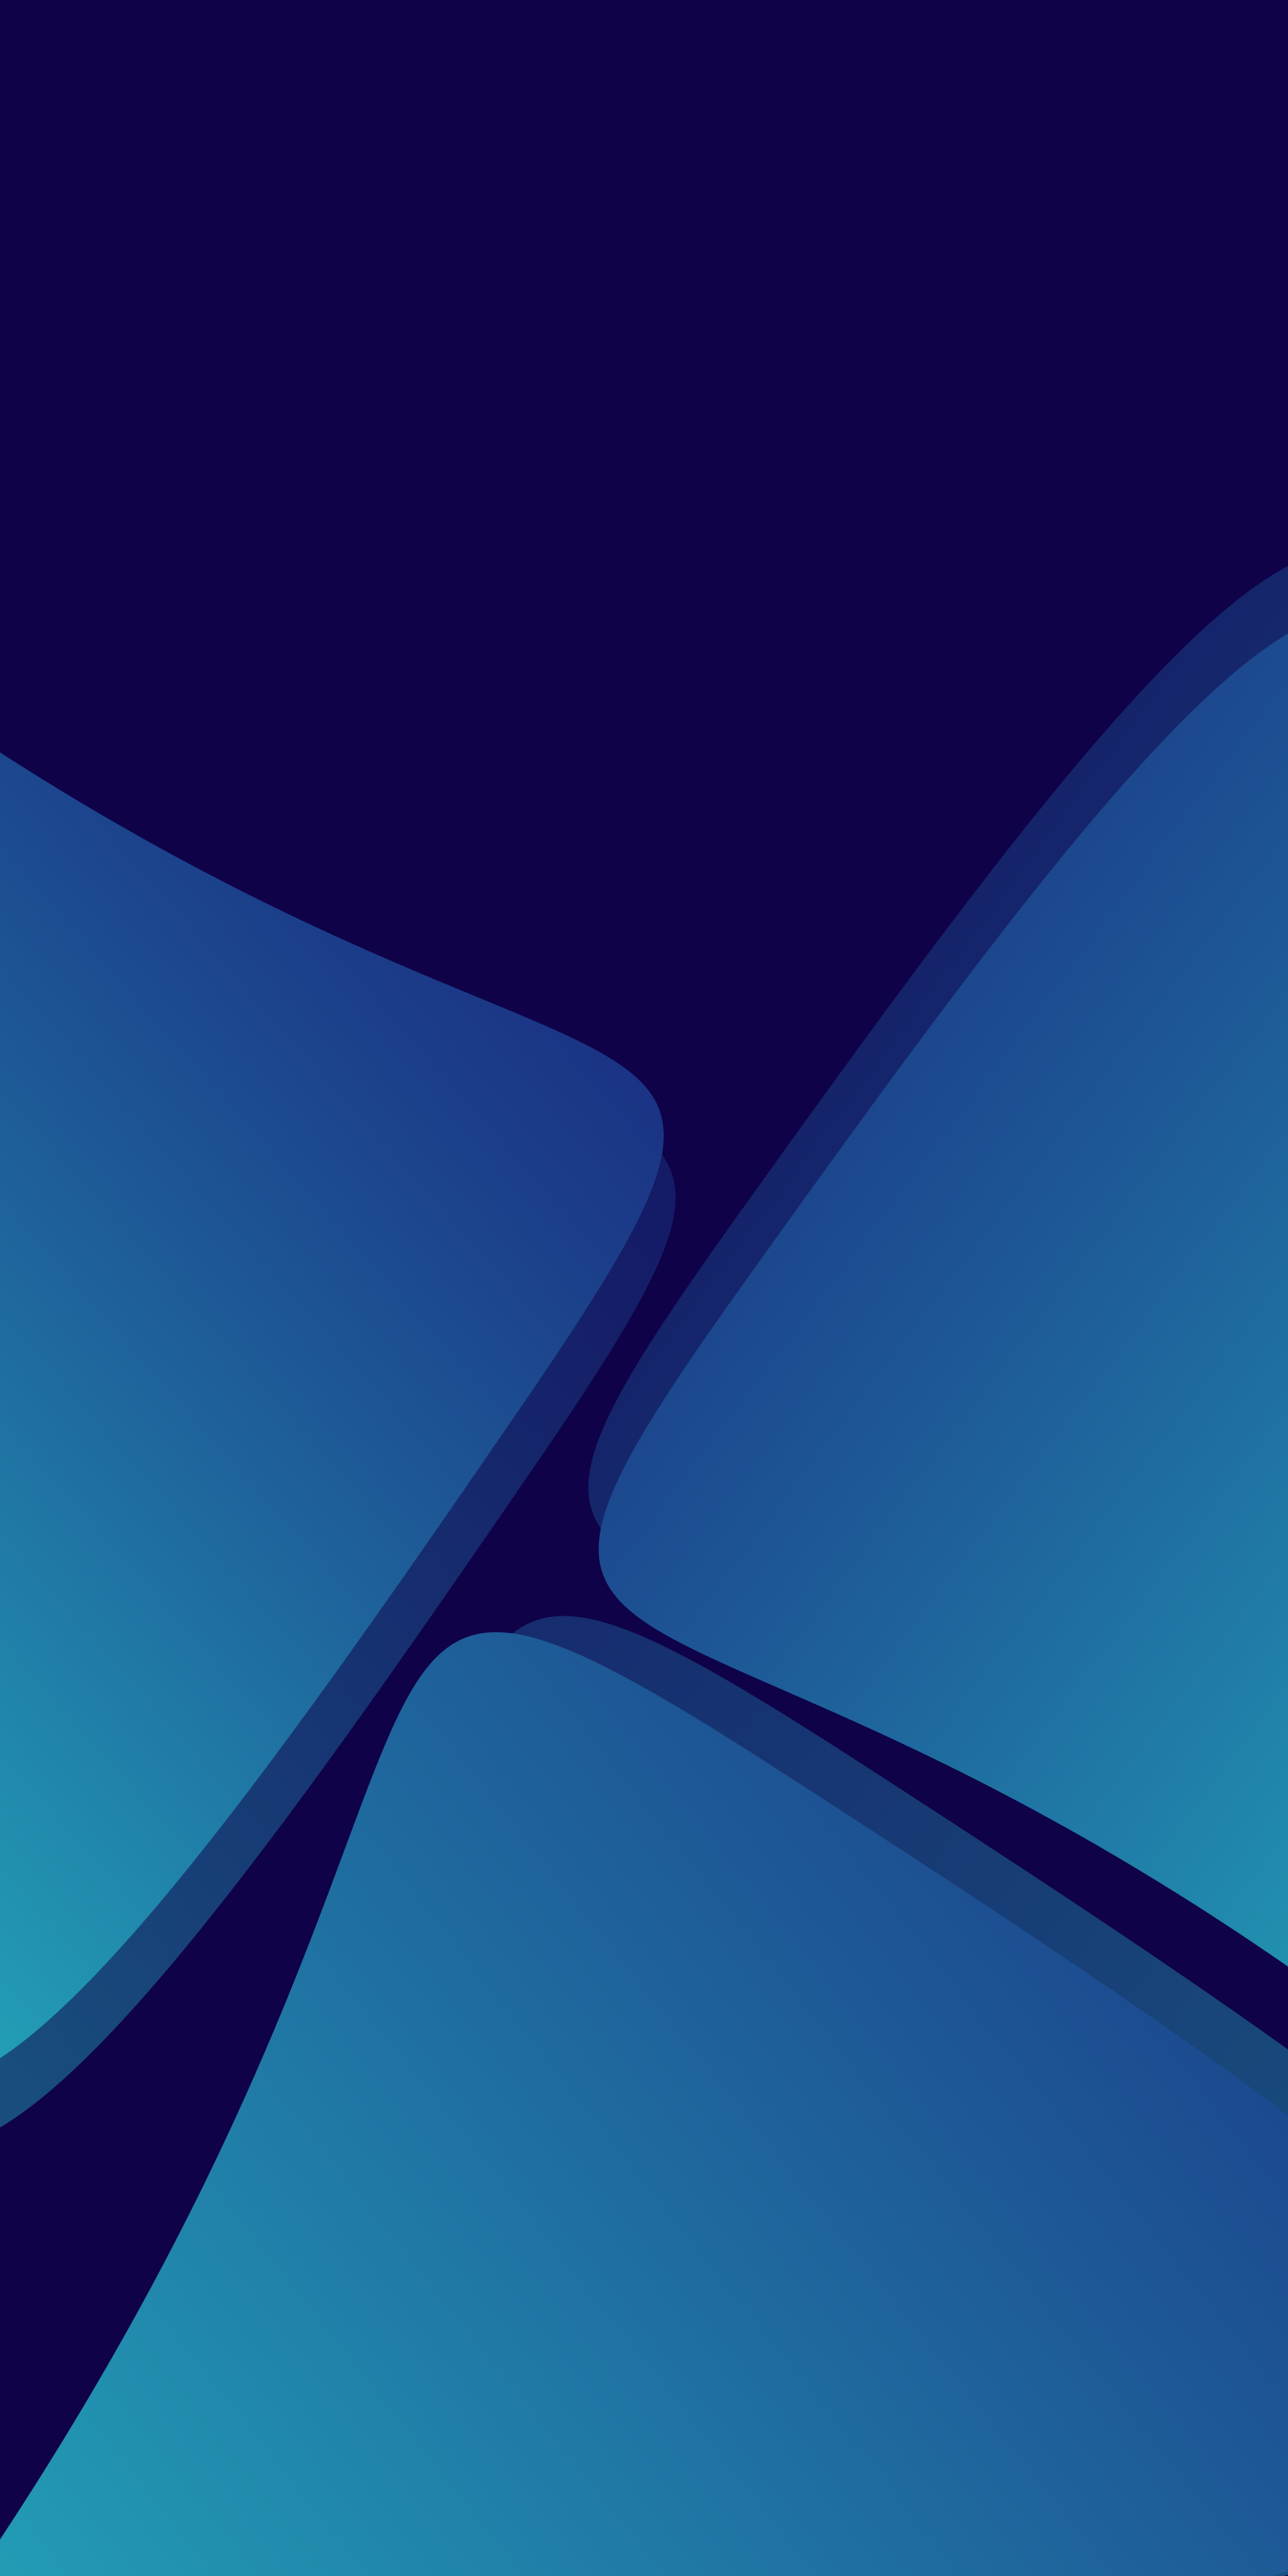 Art Structure Abstract Painting Lines Geometricart Abstract Wallpaper Minimalist Wallpaper Cool Wallpapers For Phones